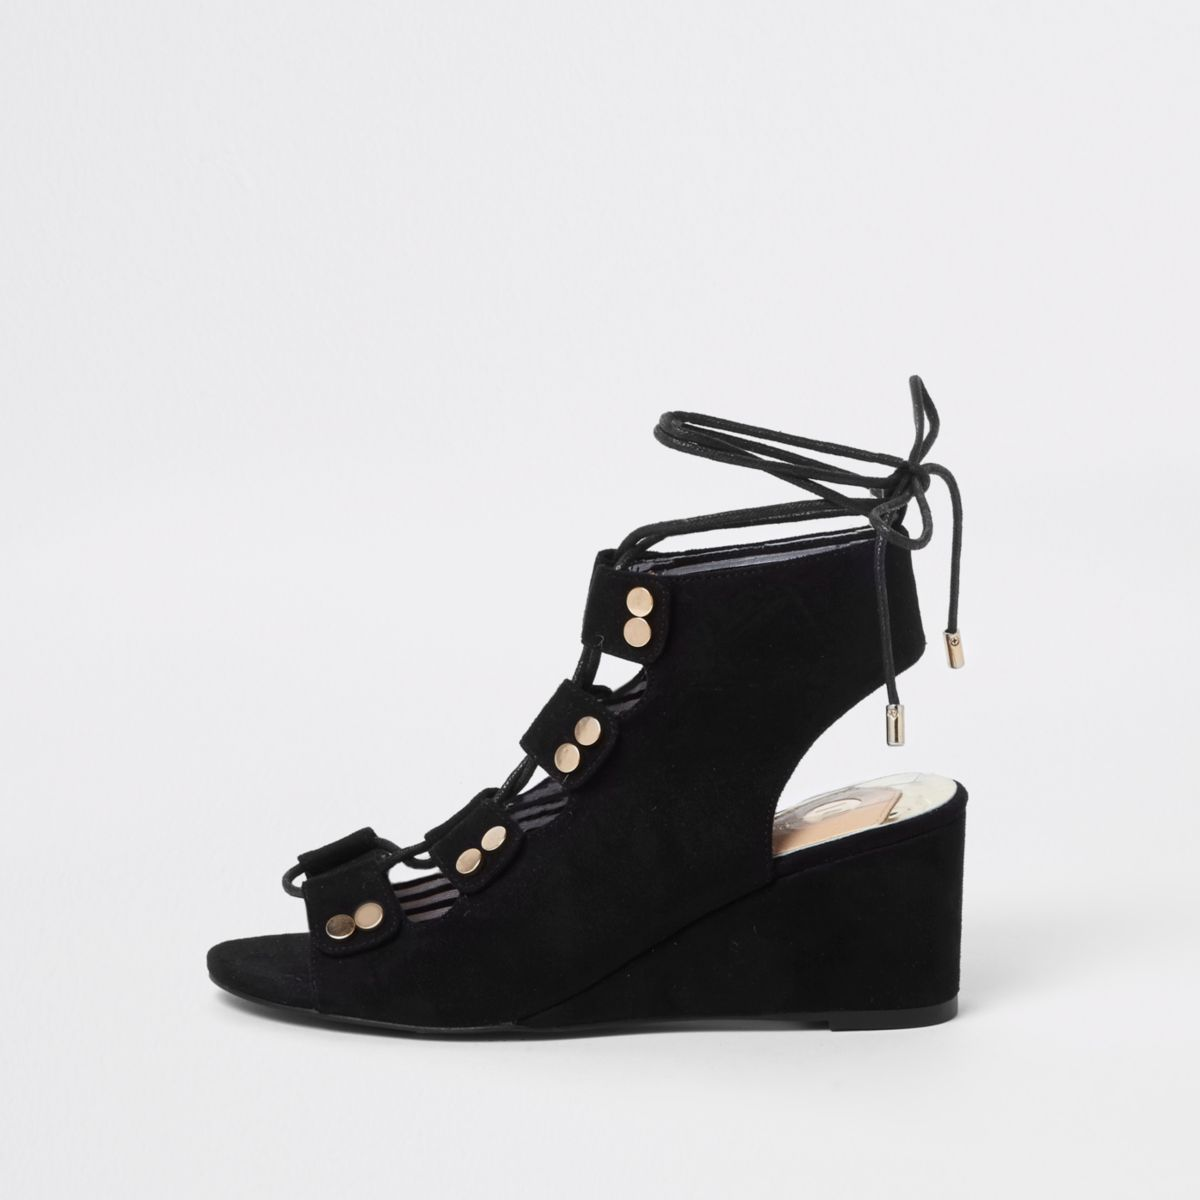 Black tie-up low wedge sandals